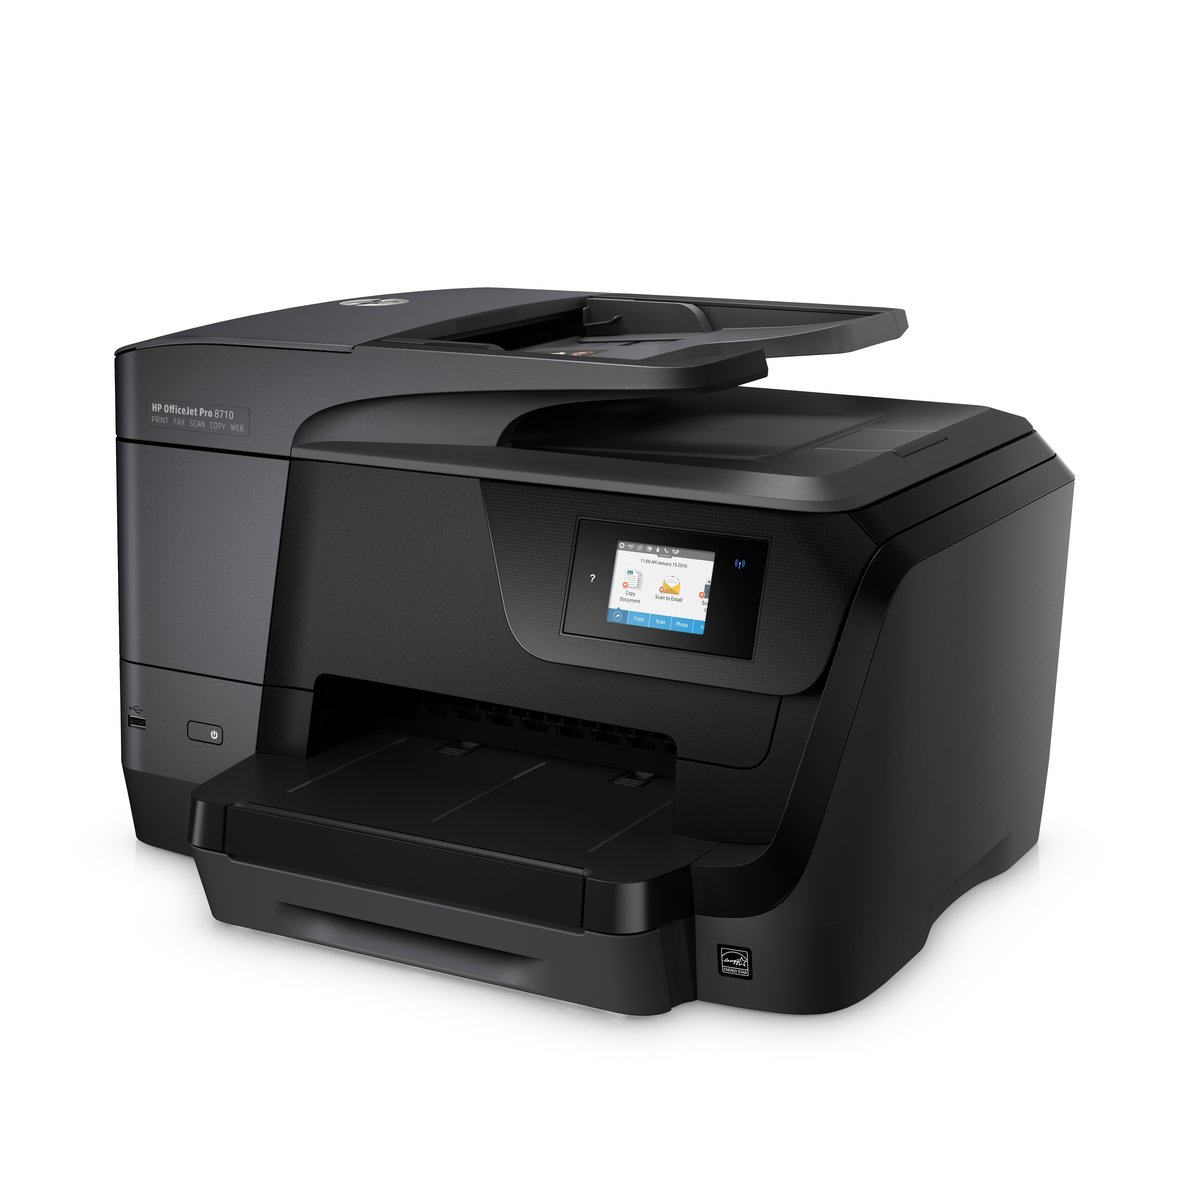 HP OfficeJet Pro 8710 All-in-One Wireless Printer with Mobile Printing,  Instant Ink ready (M9L66A#B1H) - Newegg.com